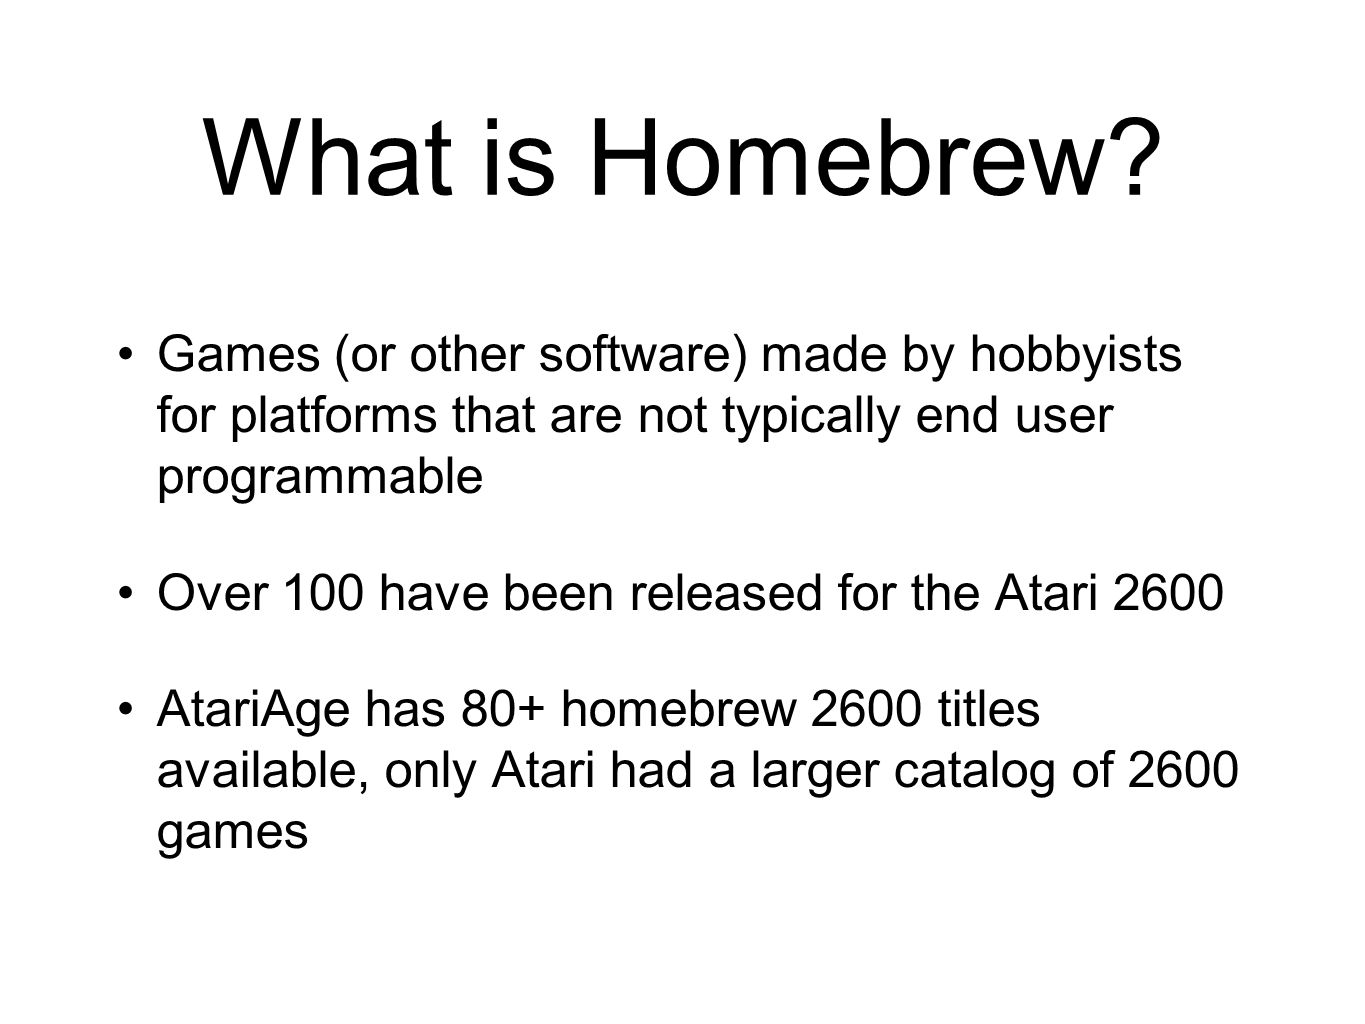 What is Homebrew Games (or other software) made by hobbyists for platforms that are not typically end user programmable.